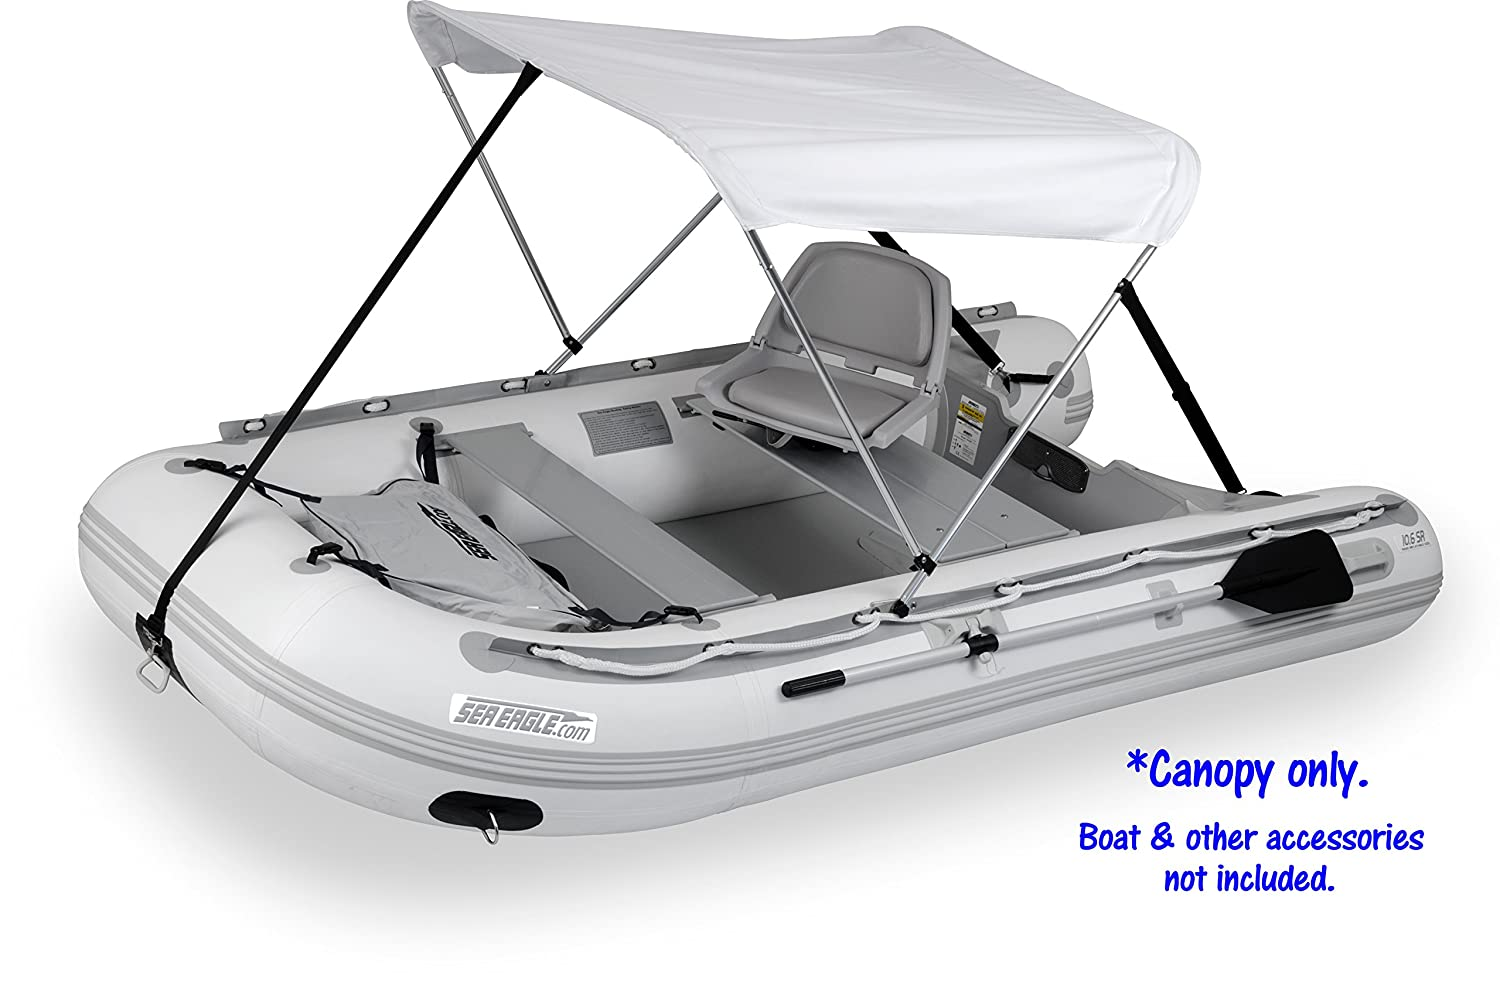 Amazon.com  Sun and Rain Canopy for Inflatable Boats by Sea Eagle Boats  Sports Fan Canopies  Sports u0026 Outdoors  sc 1 st  Amazon.com & Amazon.com : Sun and Rain Canopy for Inflatable Boats by Sea Eagle ...